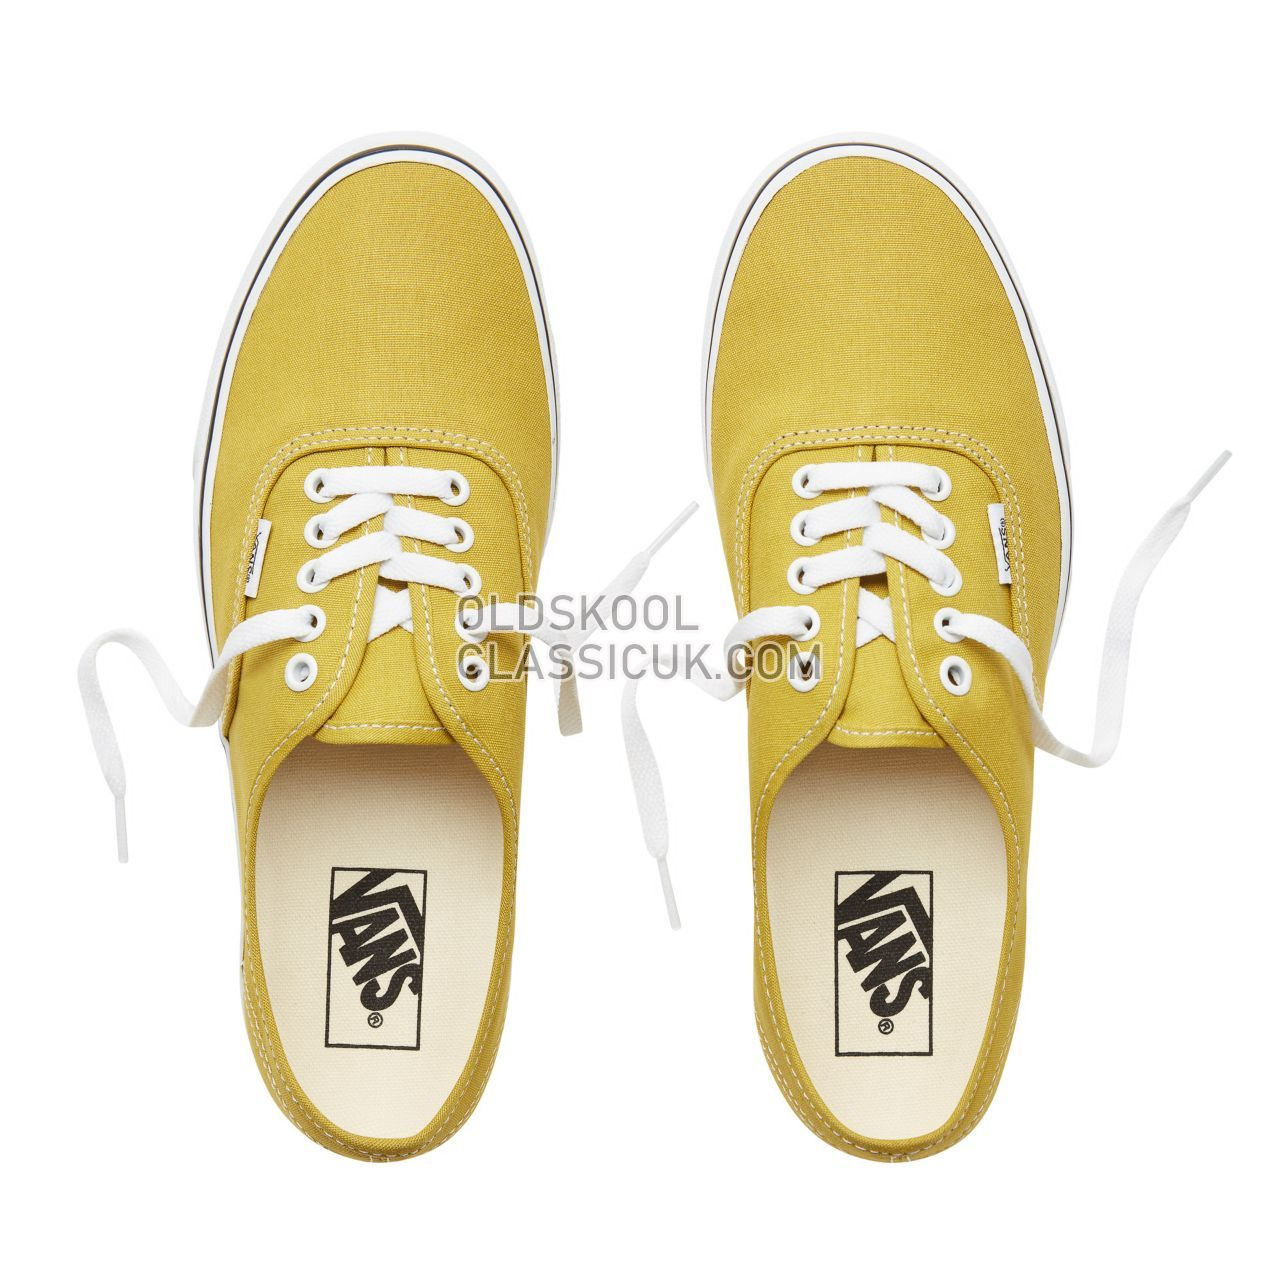 Vans Color Theory Authentic Sneakers (Unisex) Mens Cress Green/True White VA38EMU61 Shoes